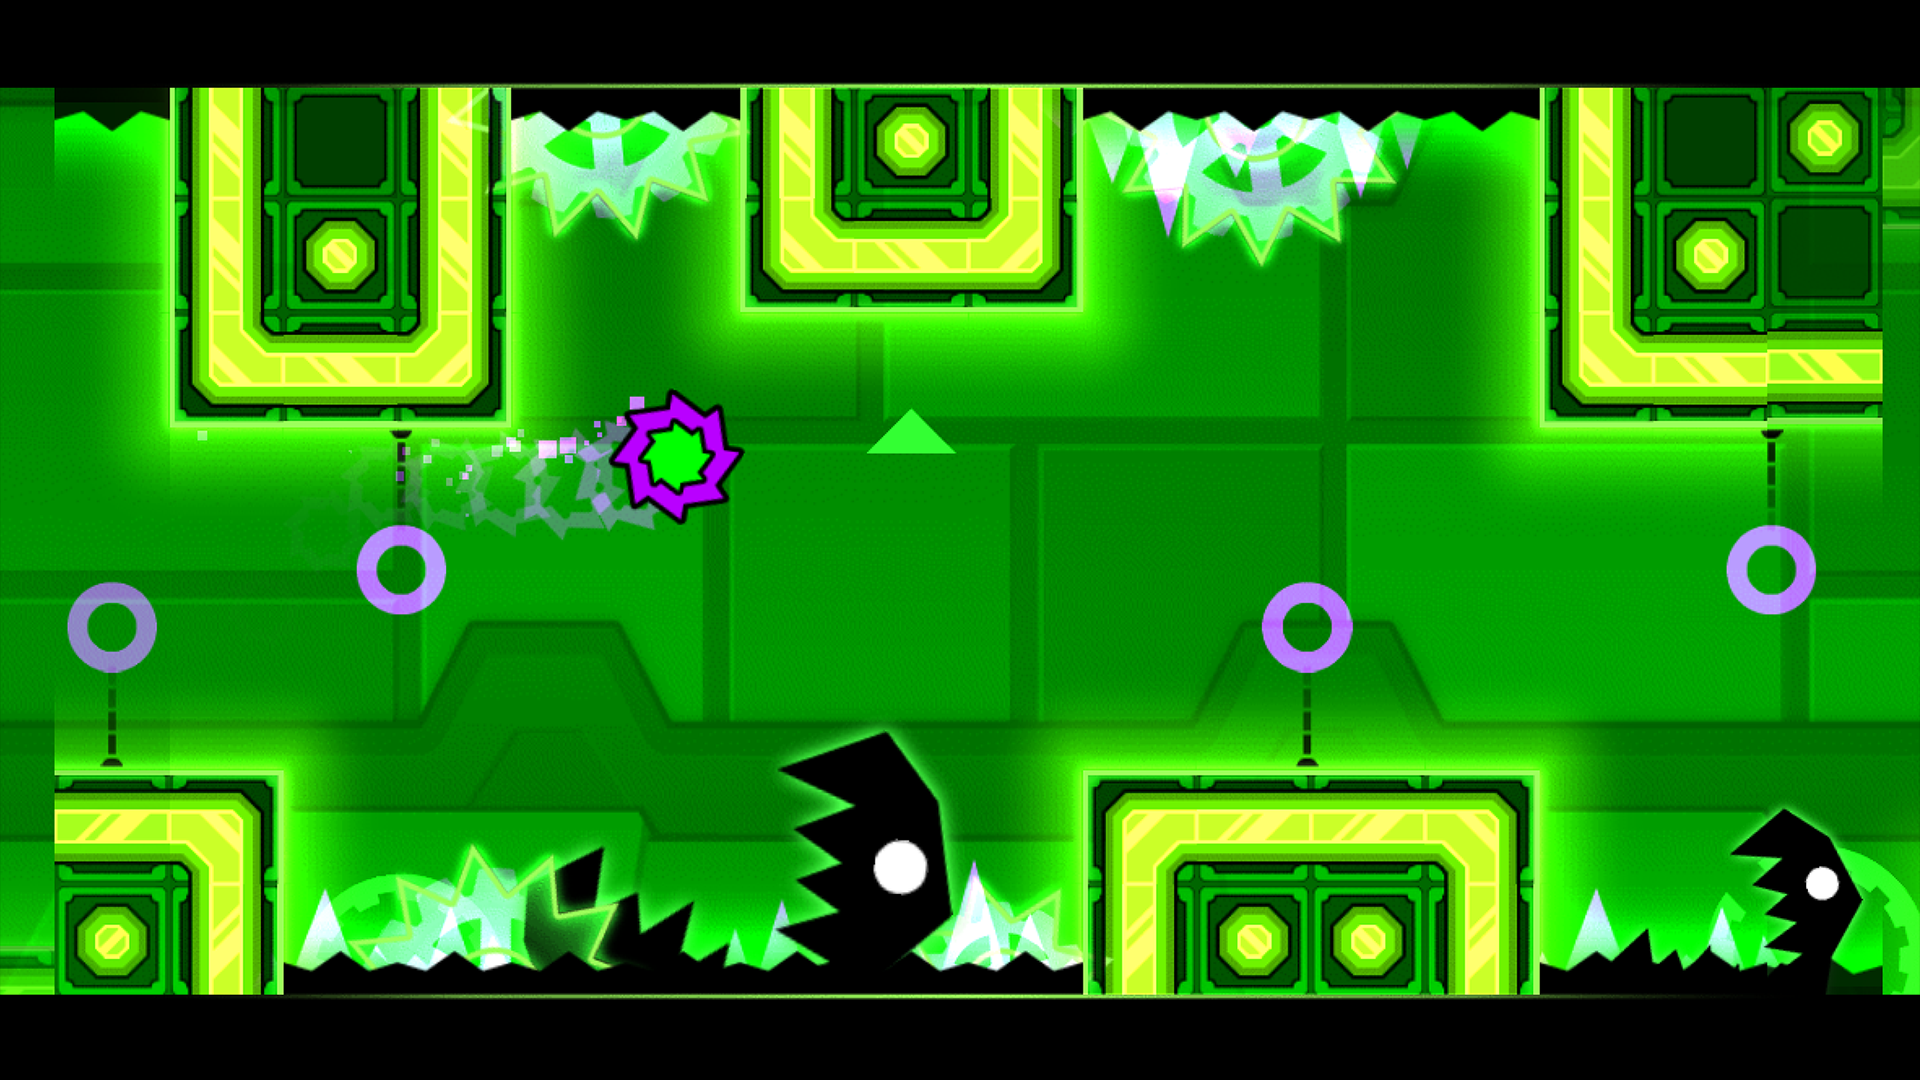 how to download geometry dash on ps4